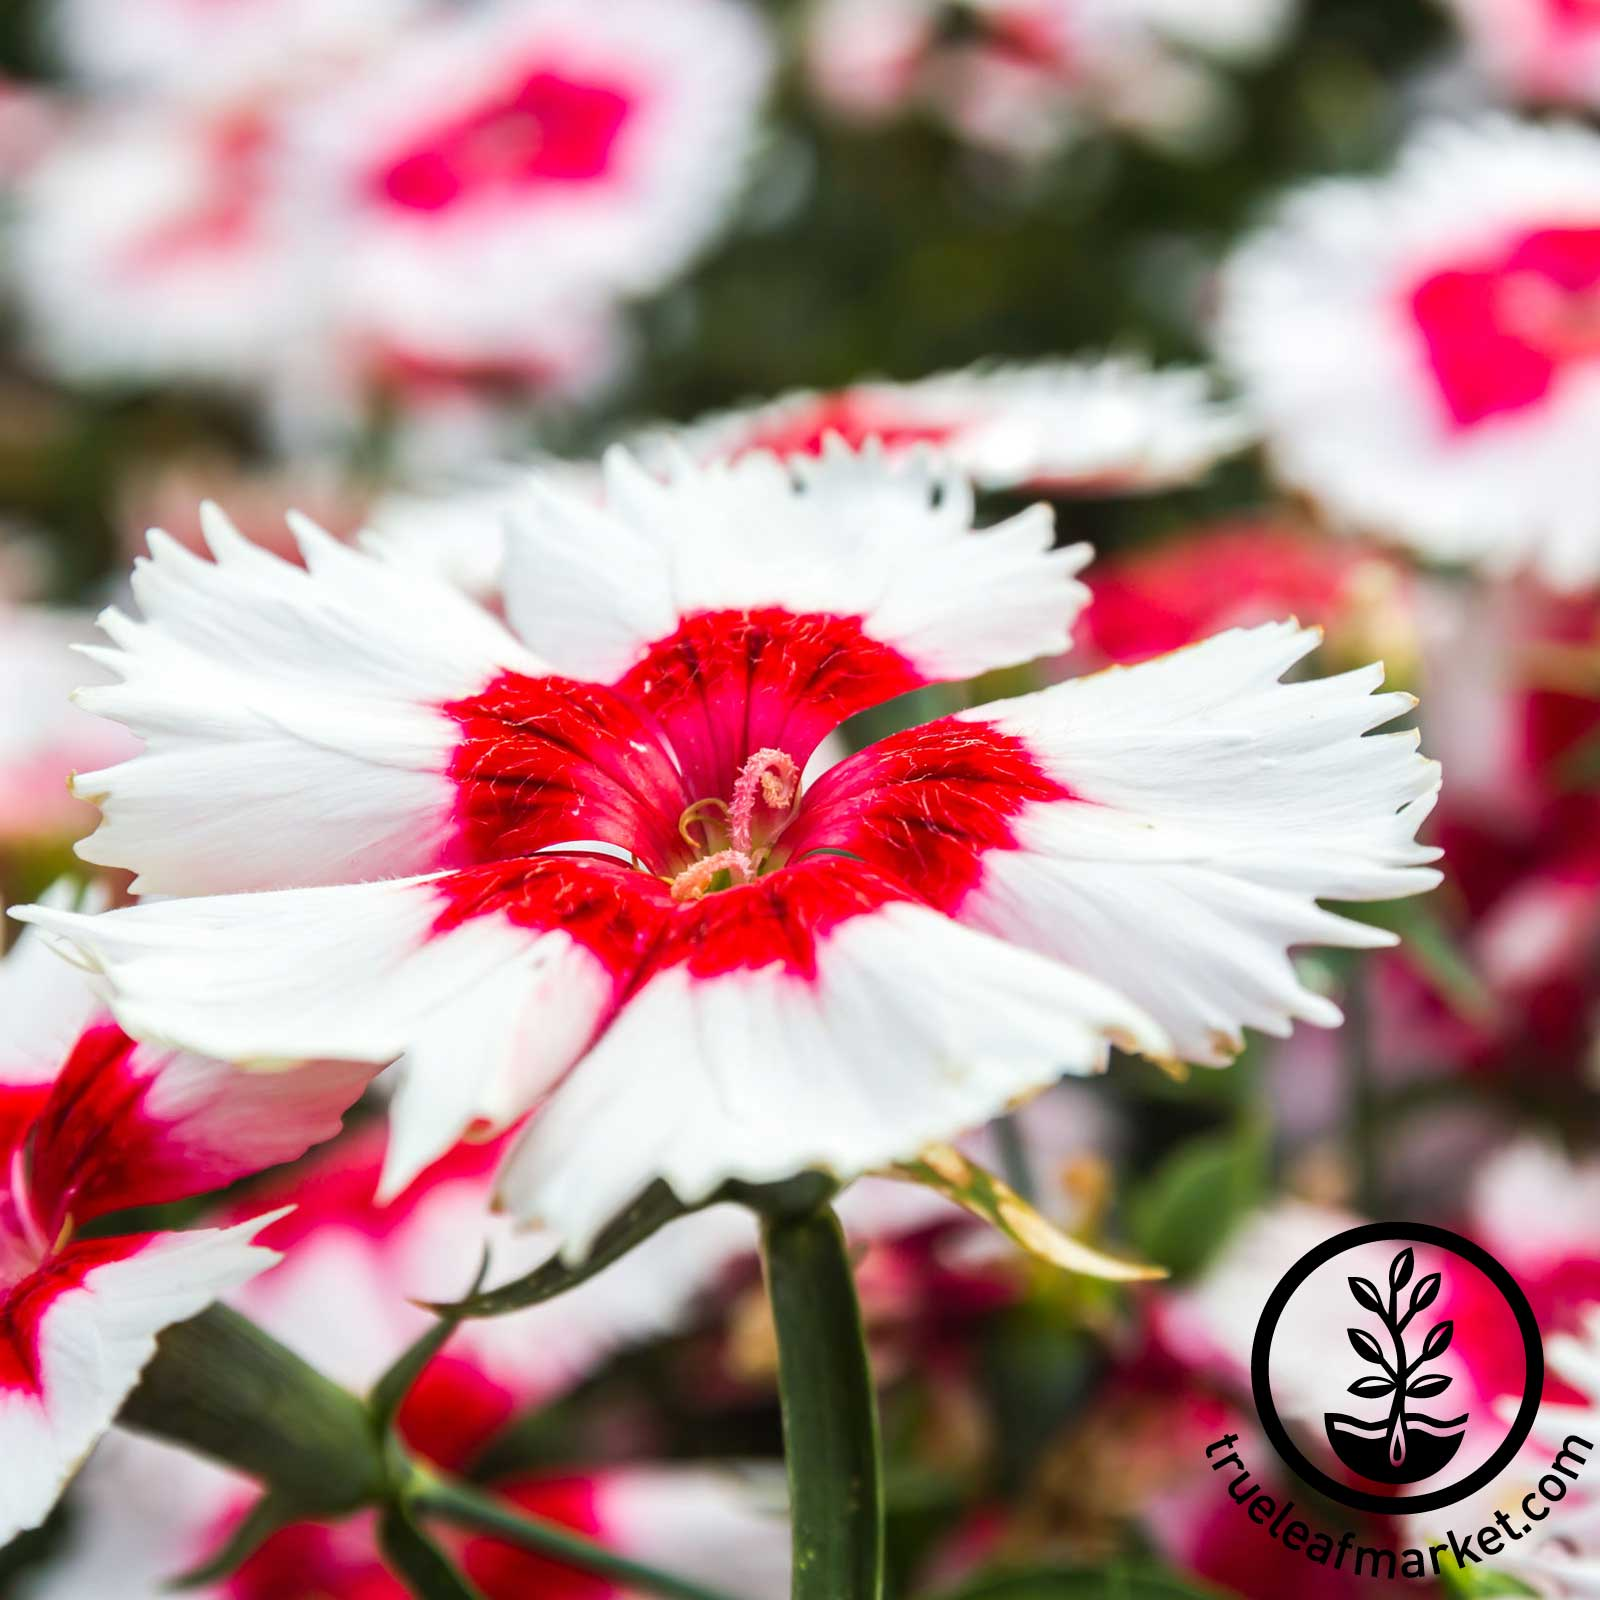 Dianthus Super Parfait Series Red Peppermint Seed